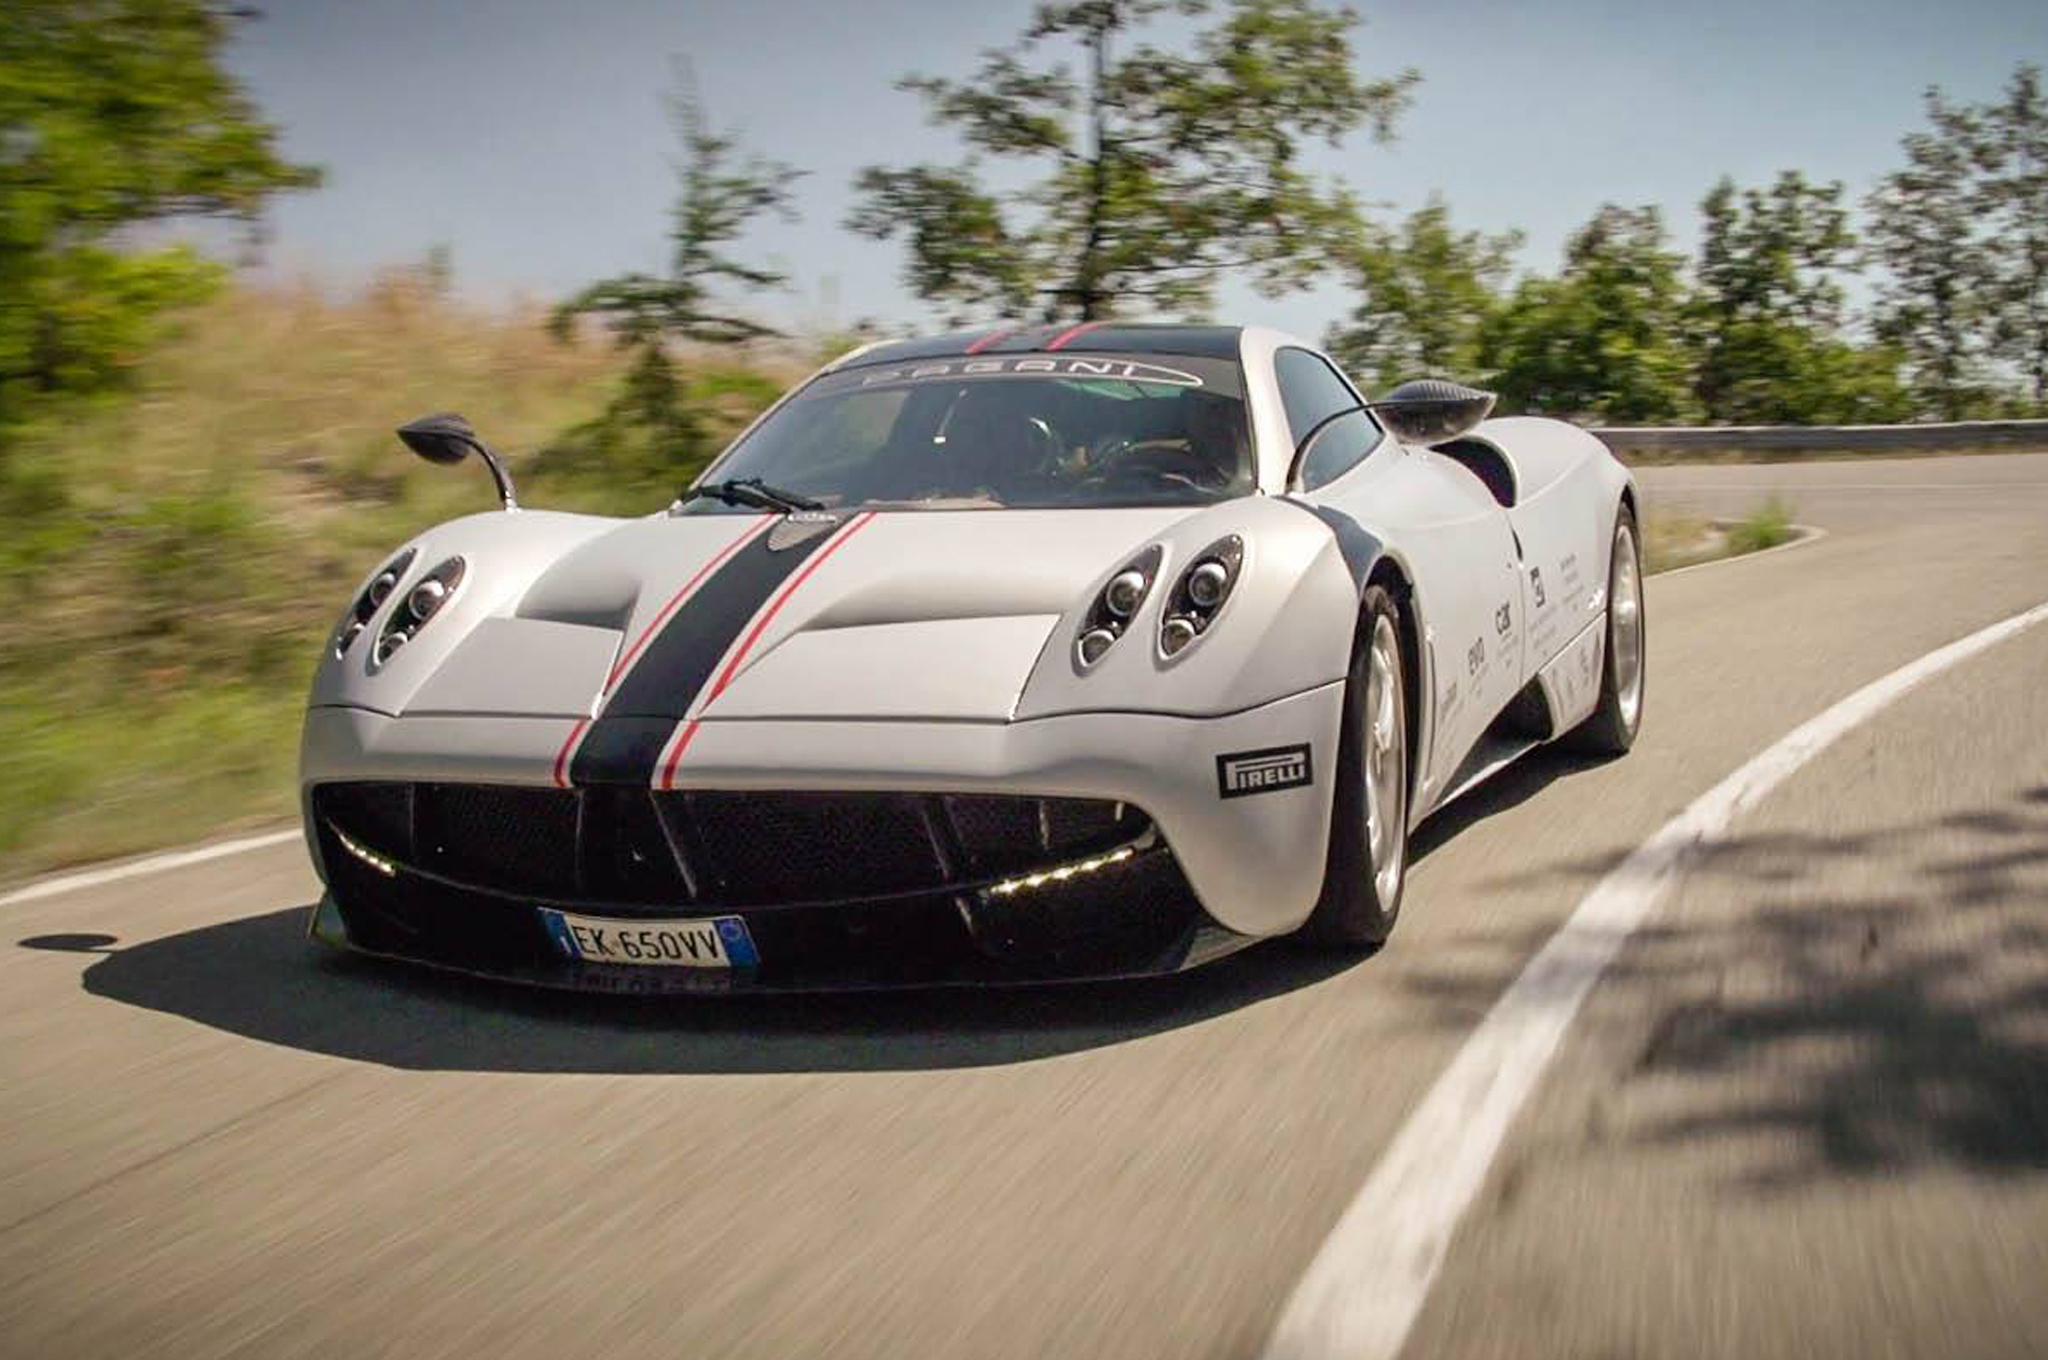 road-testing the pagani huayra on ignition - motortrend